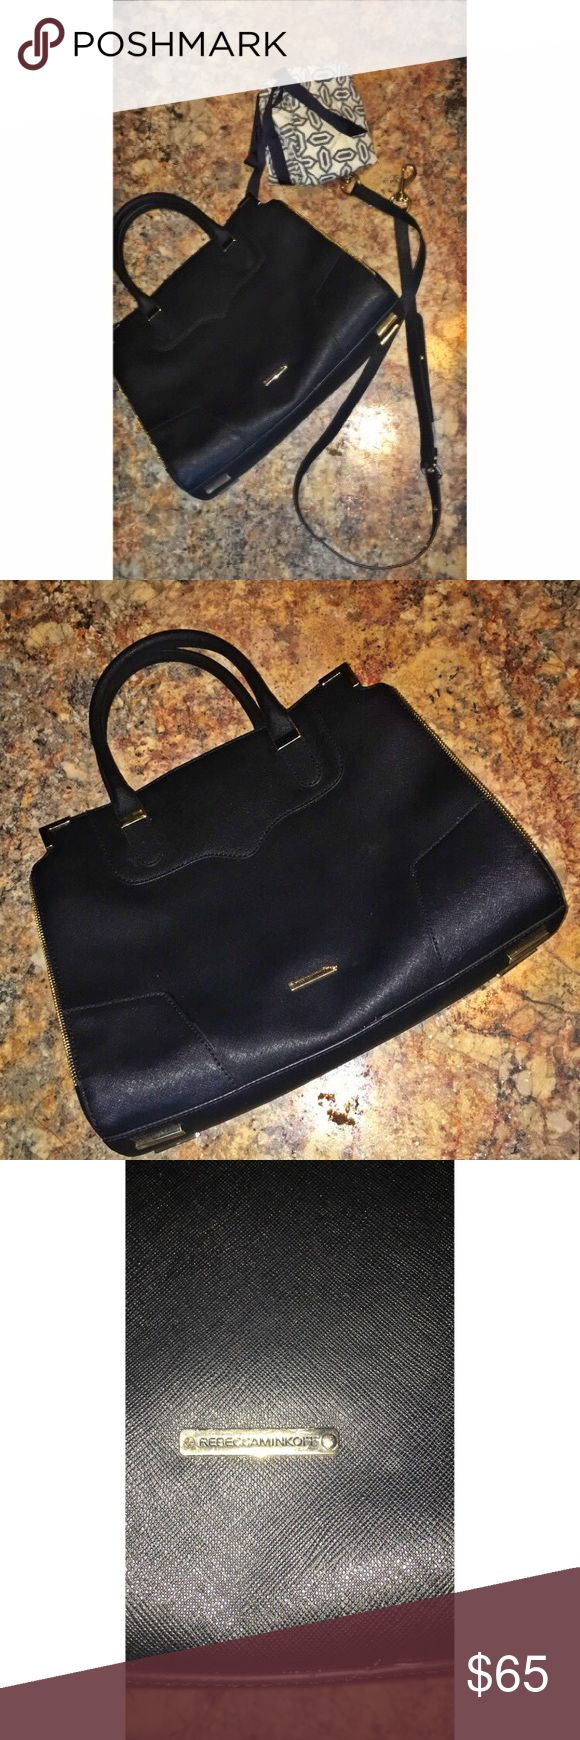 Black Rebecca Minkoff Purse Black Rebecca Minkoff Purse 😍 Comes with Duster and Strap ✨Free Gift With Every Order ✨ Fast Shipping ✈️ Same Day Shipping If Ordered Before 3PM ✔️ Offers Welcome ❗ Rebecca Minkoff Bags Shoulder Bags